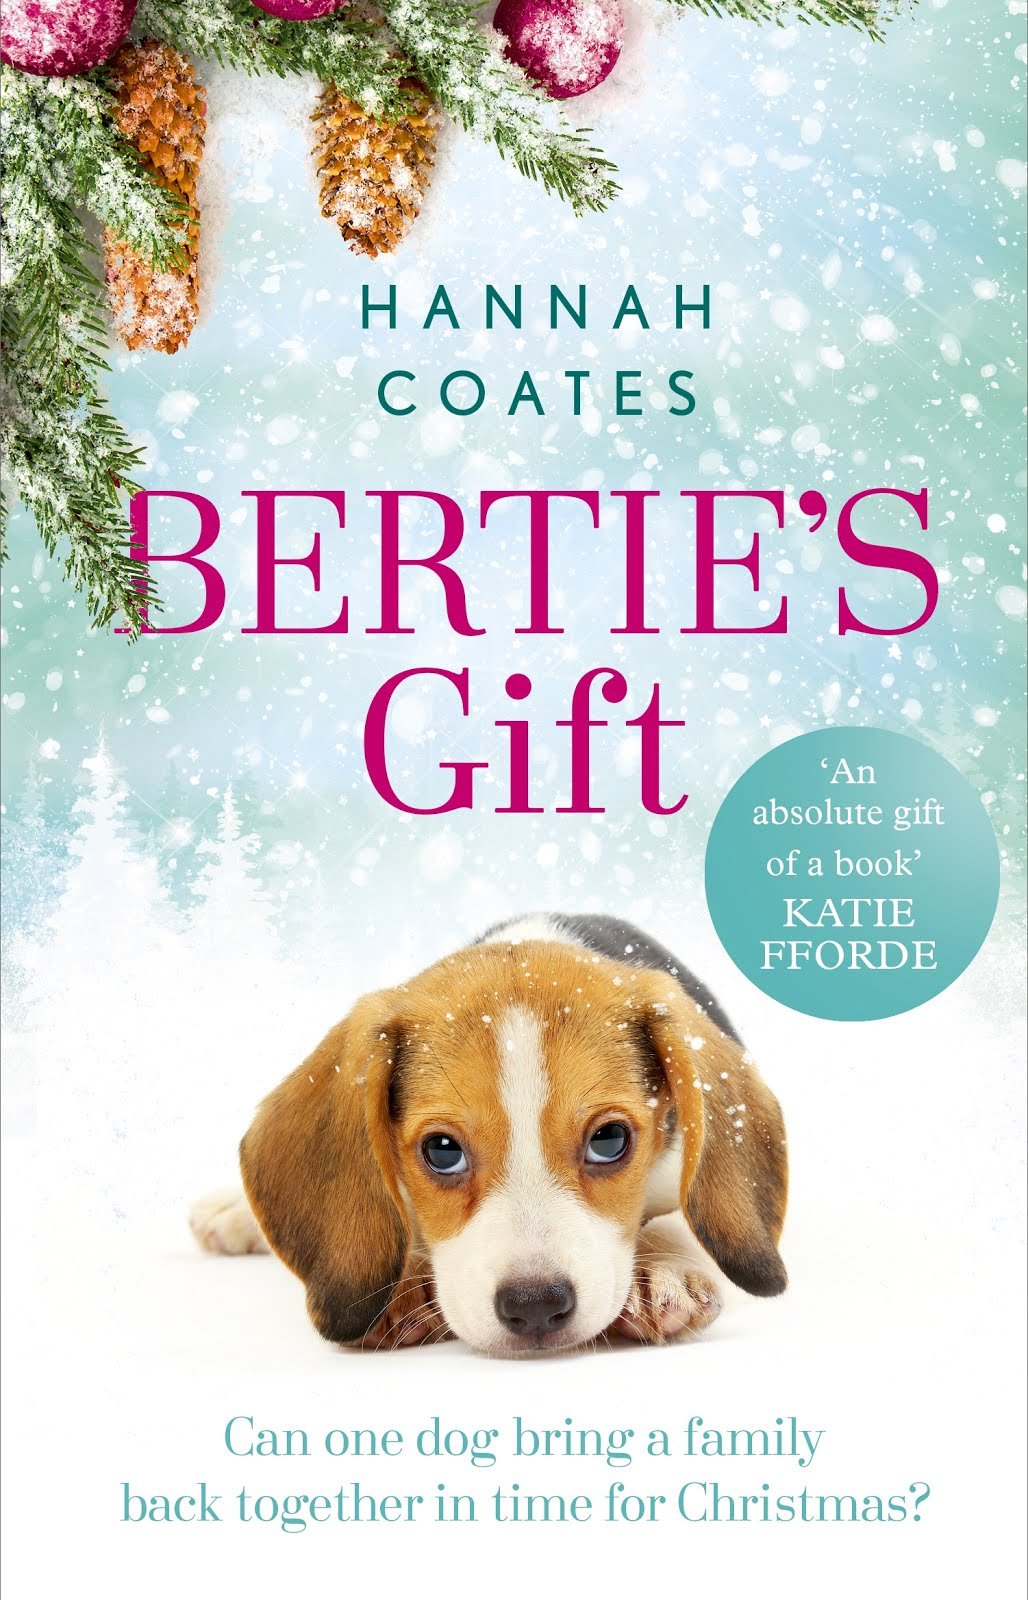 BERTIE'S GIFT, out Nov 2017